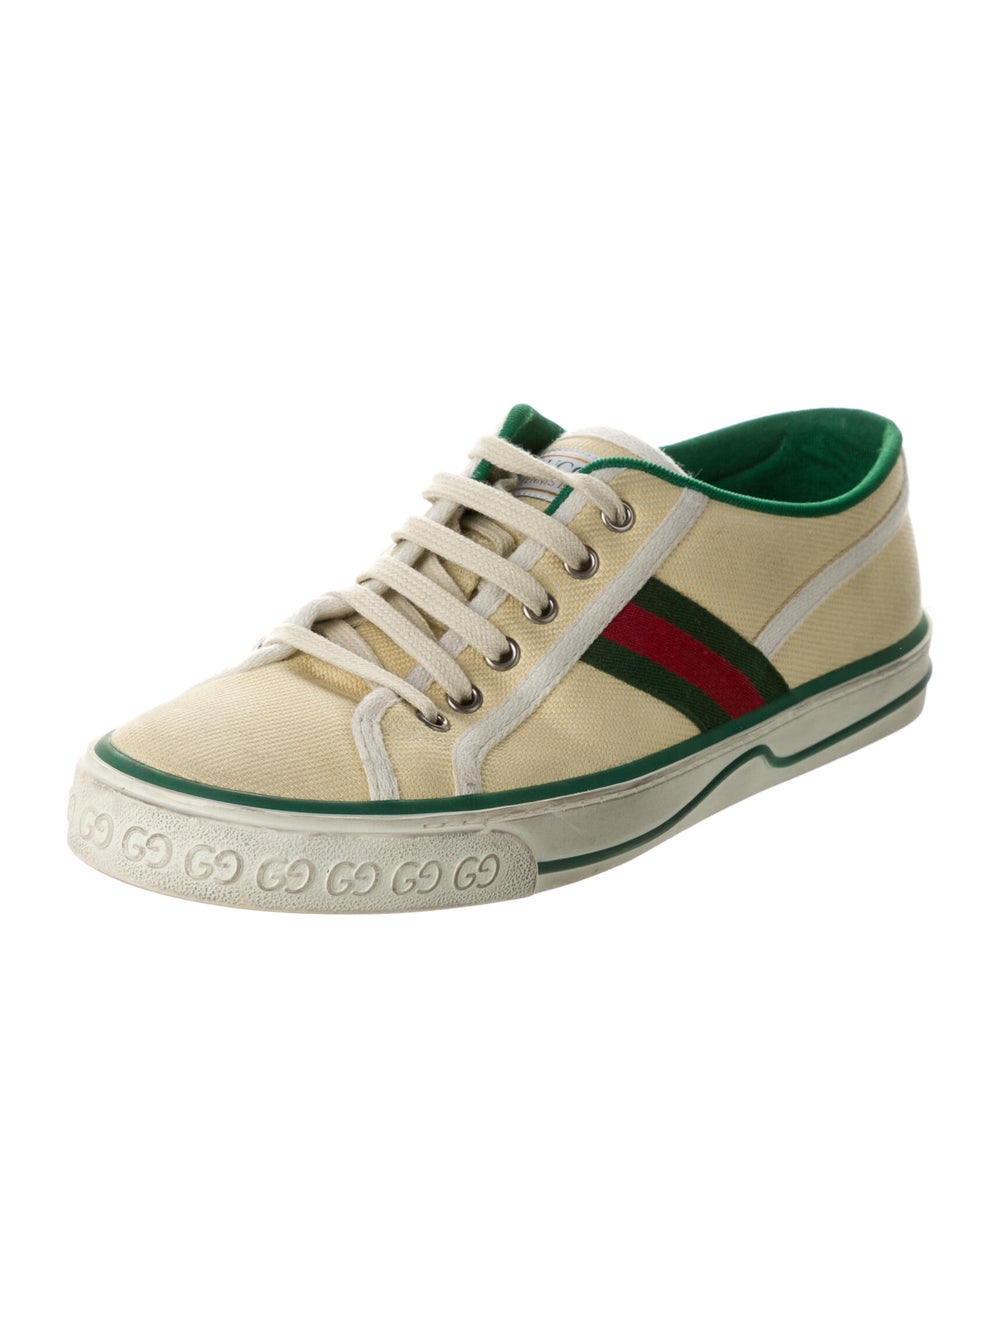 Gucci 1977 Tennis Sneakers - image 2